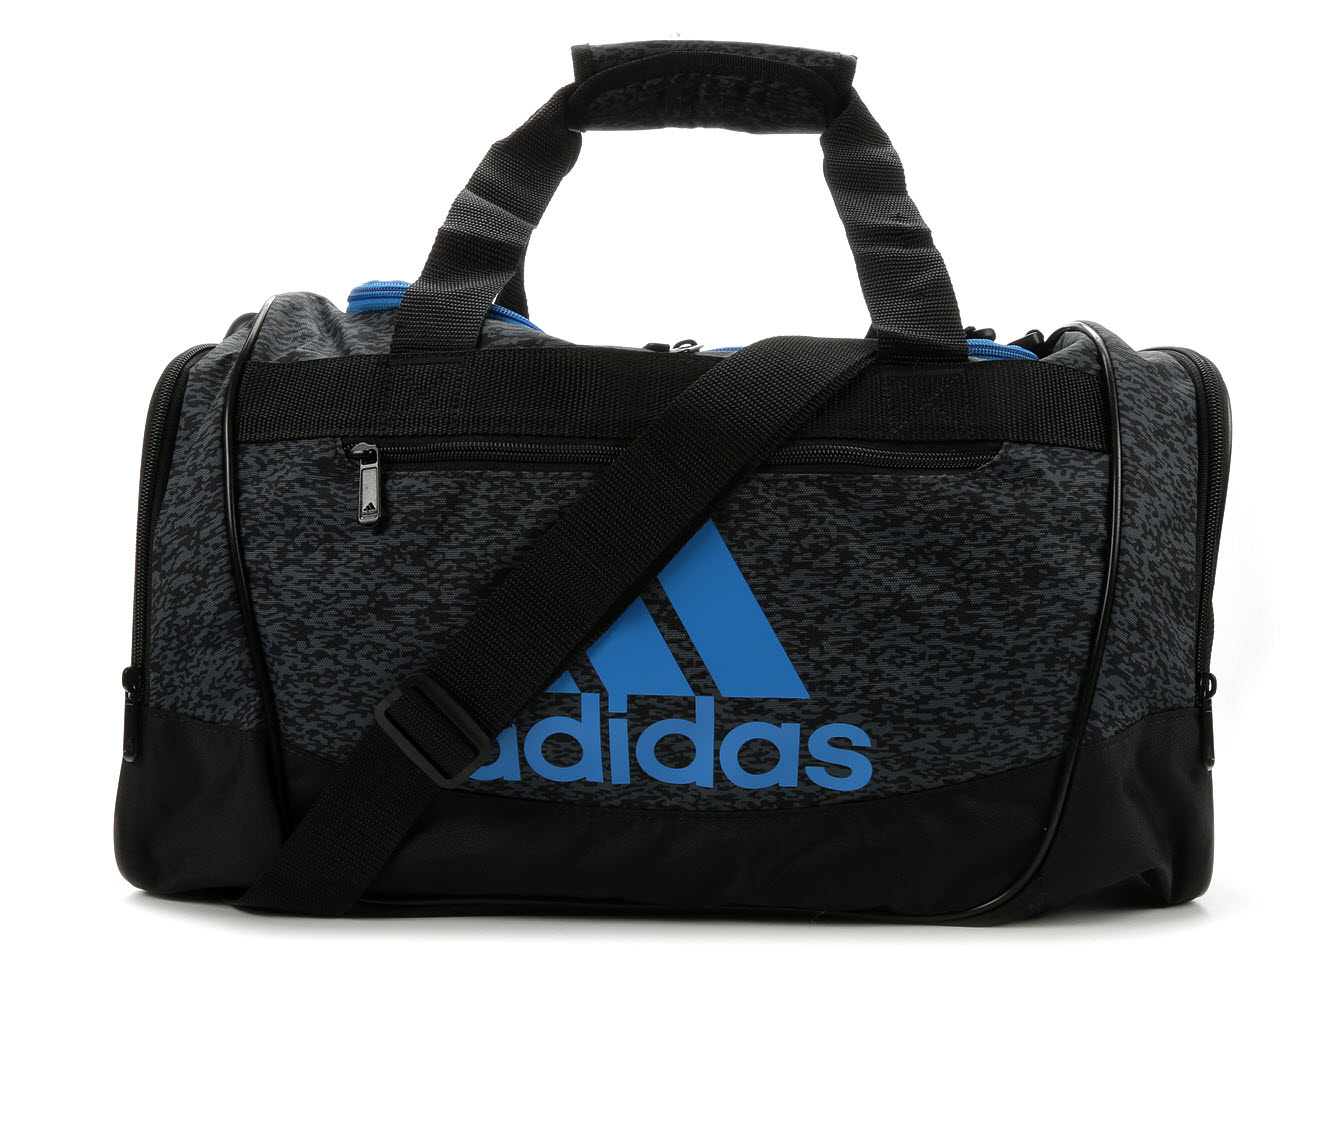 Image of Adidas Defender III Small Duffel Bag (Grey - Size UNSZ)